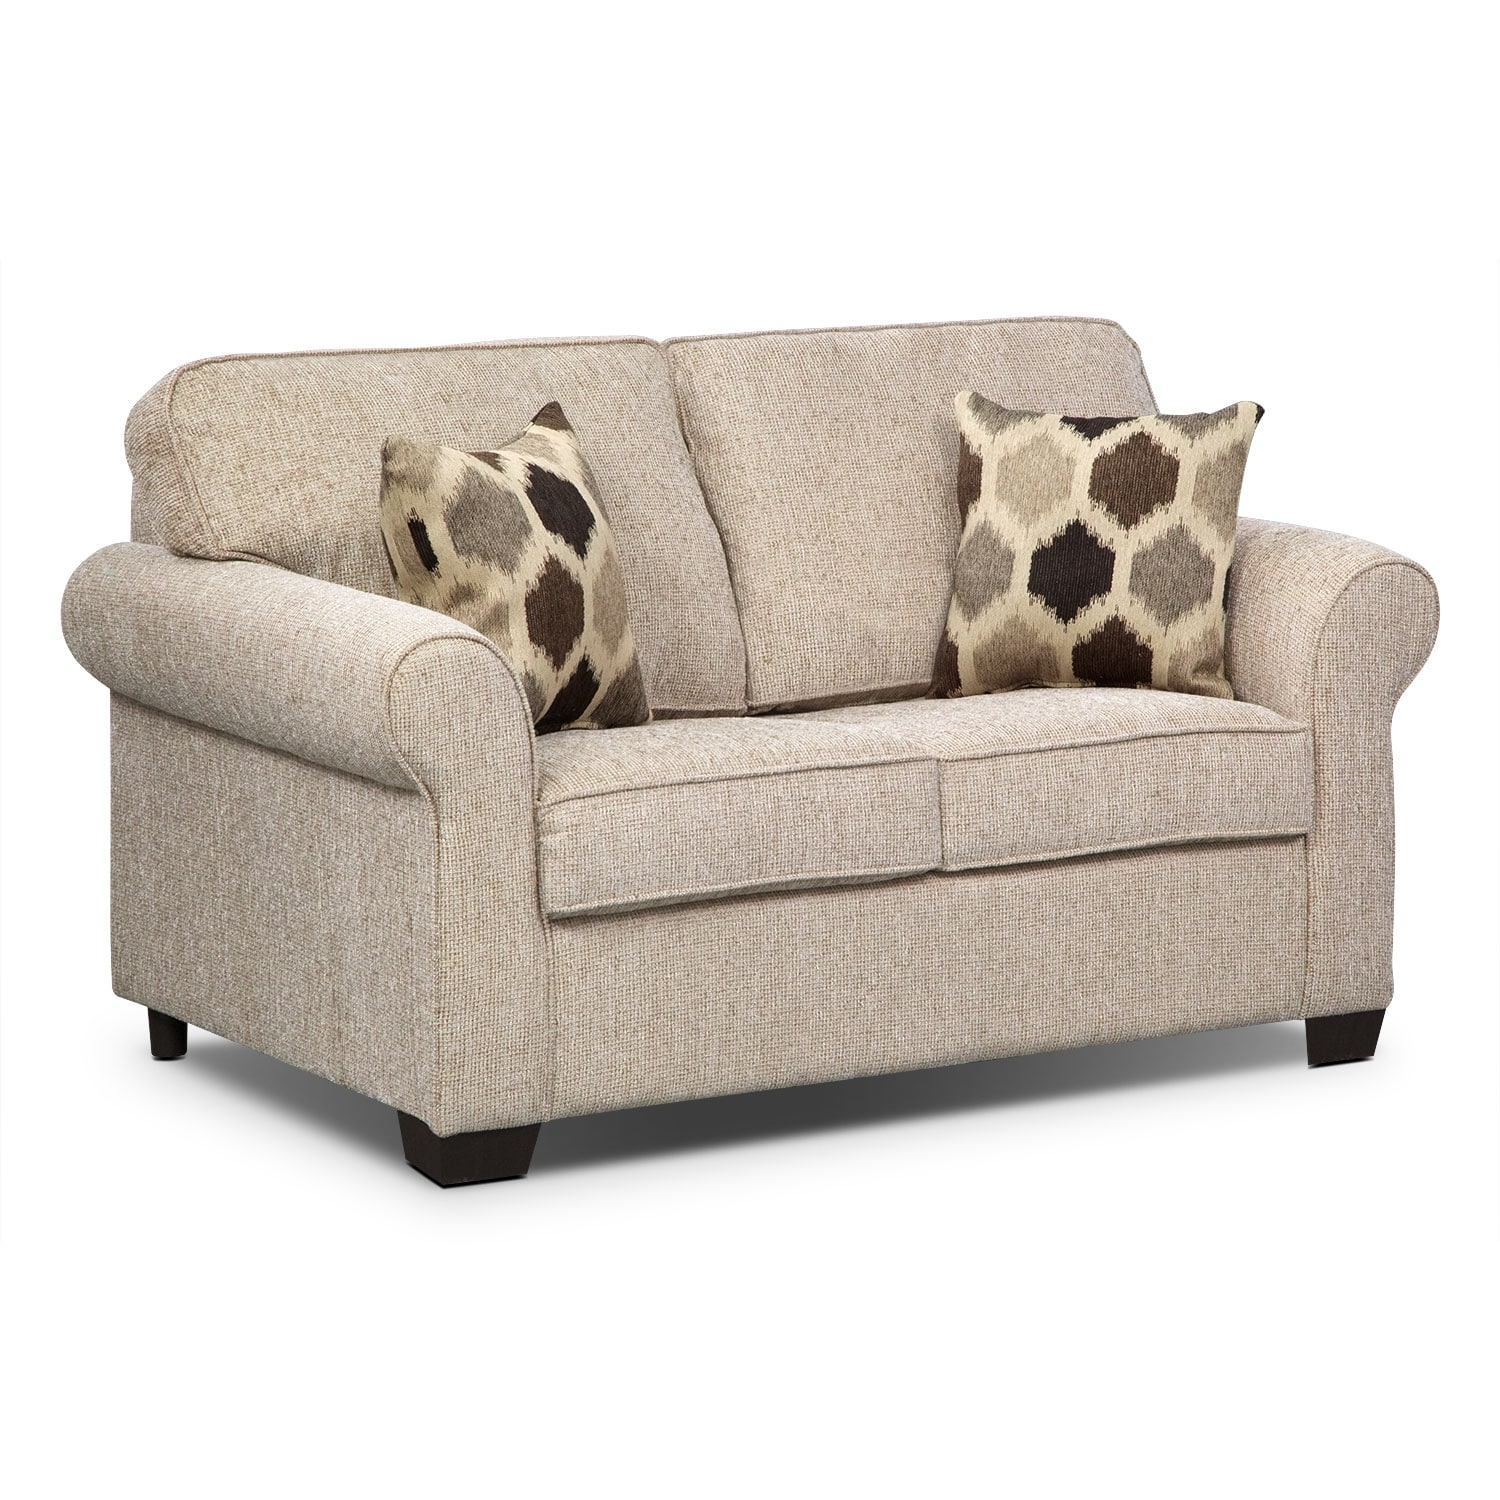 Fletcher Twin Memory Foam Sleeper Sofa Beige